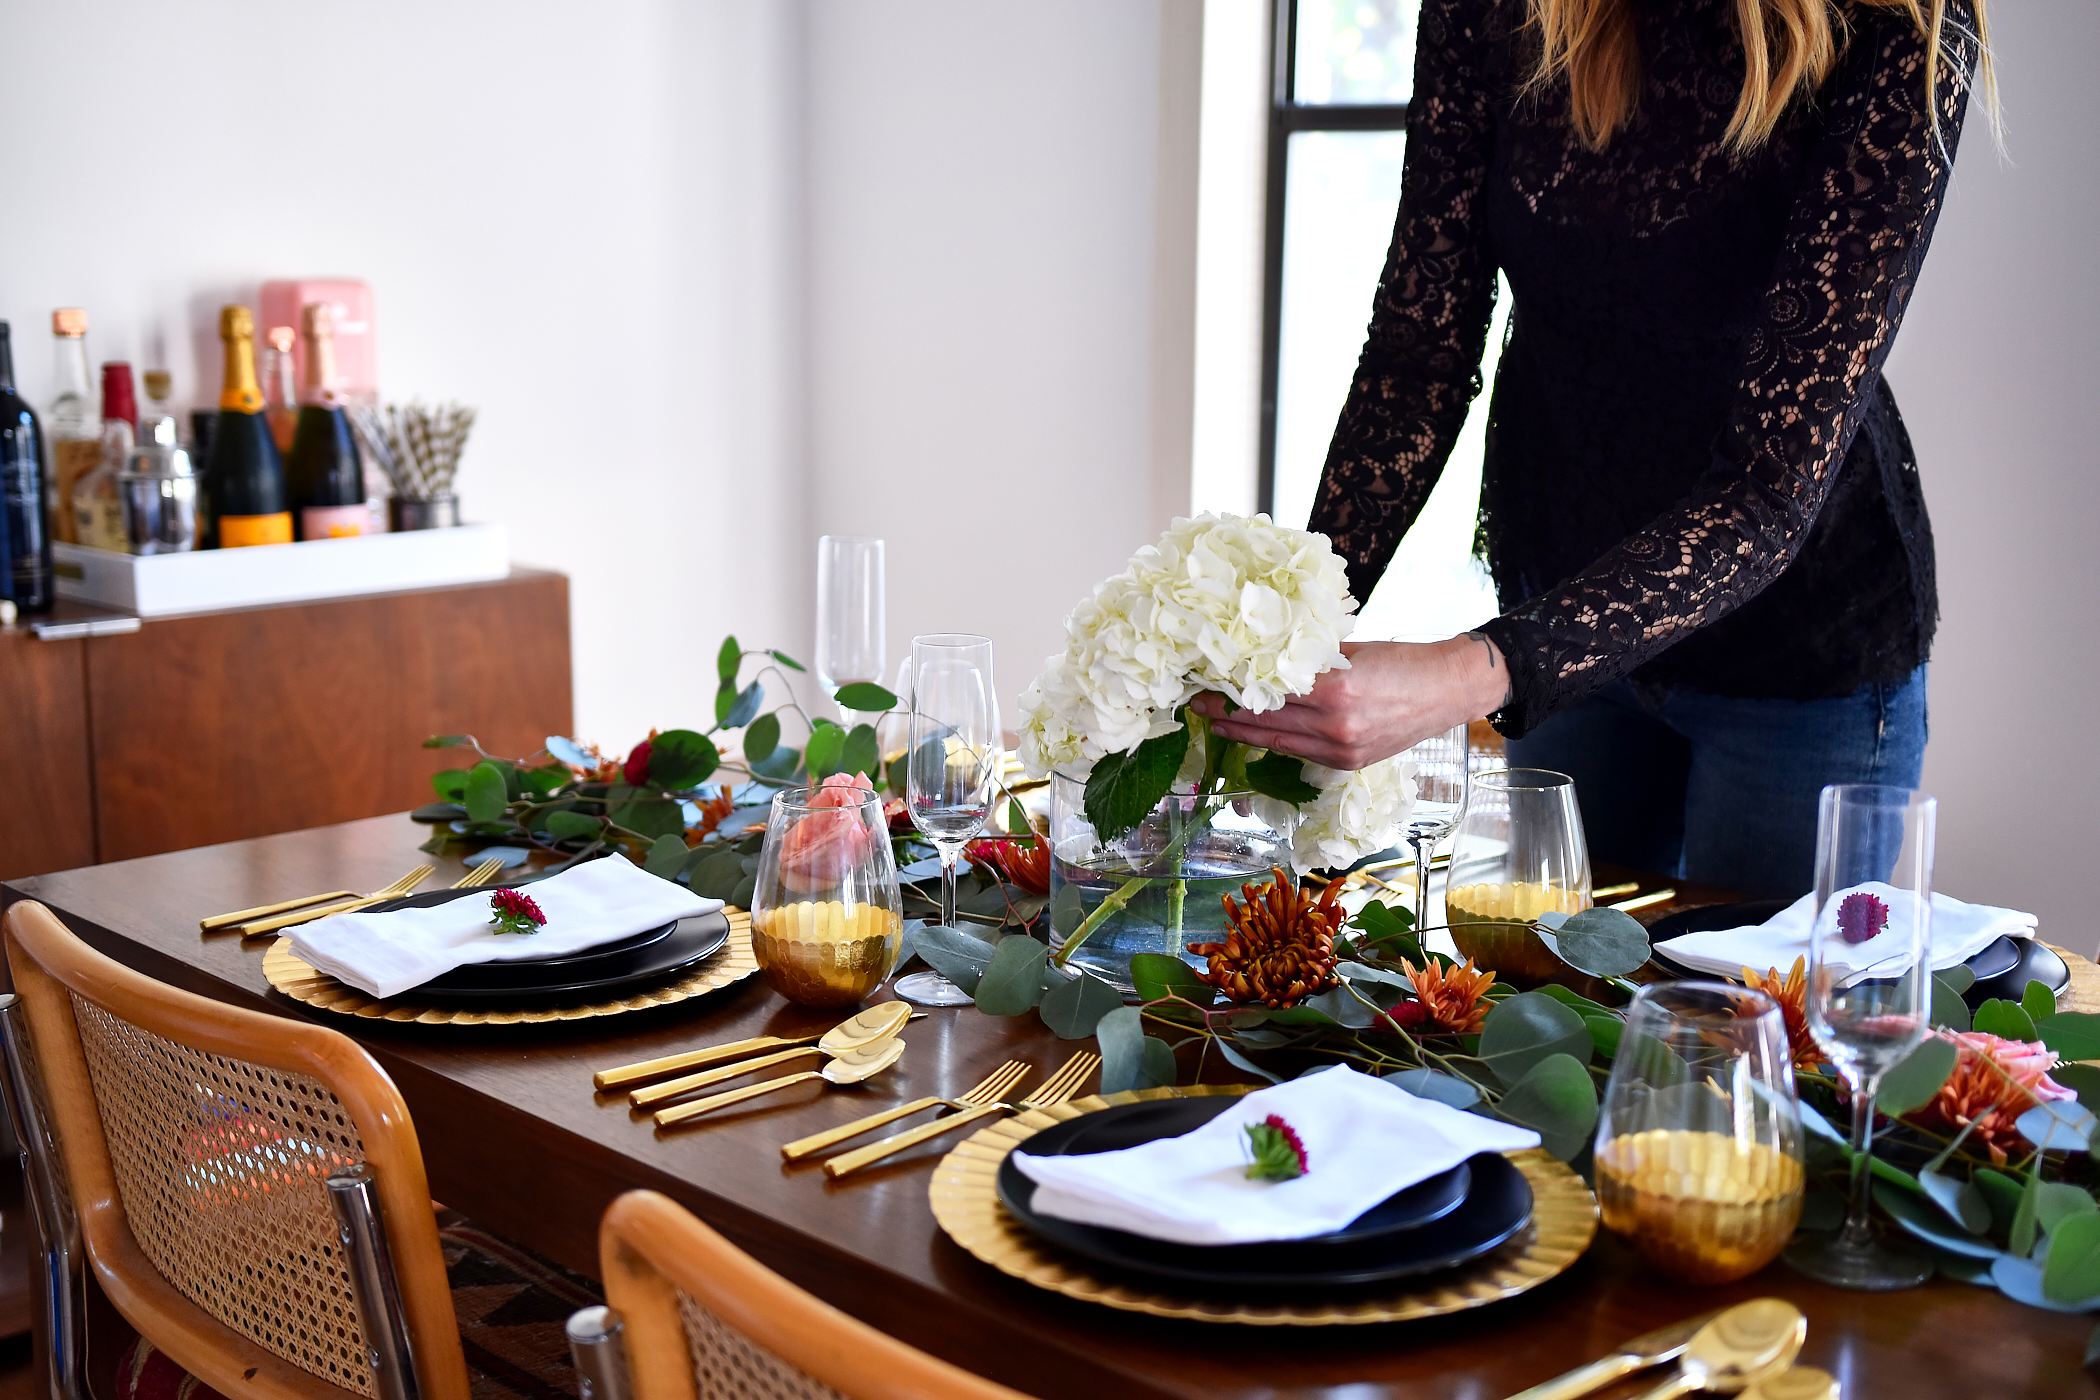 Thanksgiving Tablescape Ideas, Modern Thanksgiving Setting, Black & Gold Dinner Setting, Eucalyptus, Fall Flowers, Black Lace Top